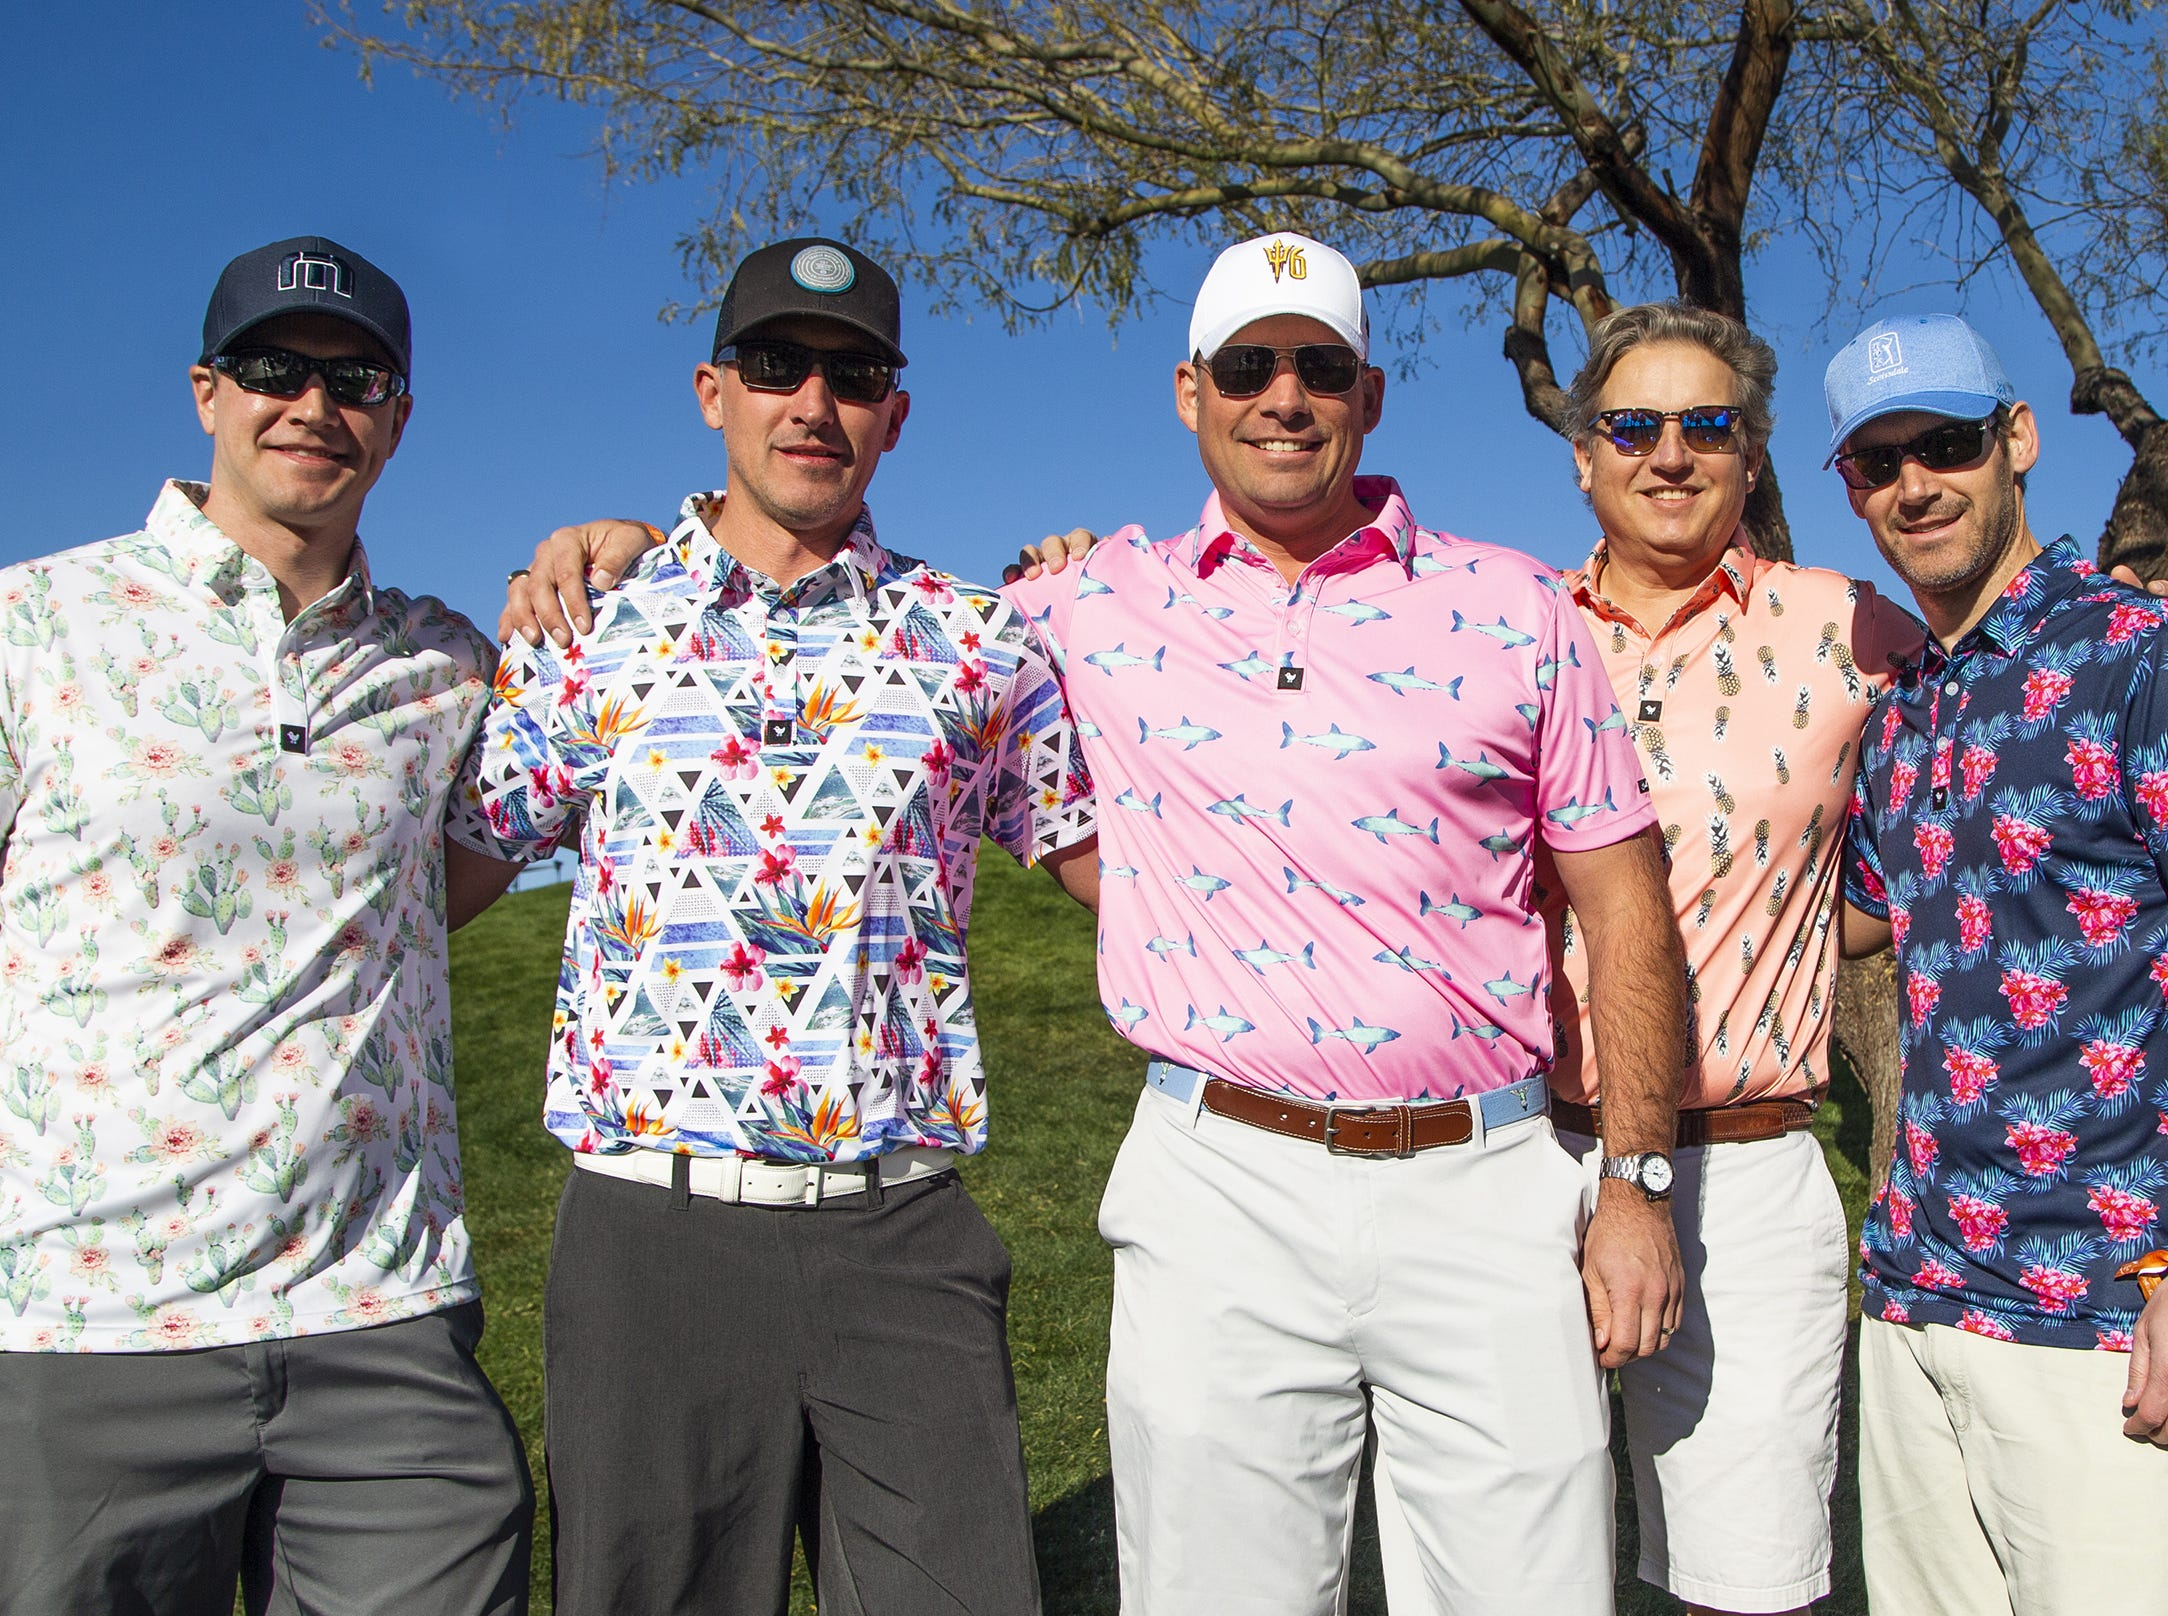 A group of friends from Pittsburgh wear colorful attire during the second round of the Waste Management Phoenix Open at the TPC Scottsdale, Friday, February 1, 2019. From left to right are; Paul Kress, 35, Paul Pilkenton, 44, Rick Johnson, 40, Marcus Sass, 50, and Blue Jenkins, 38.